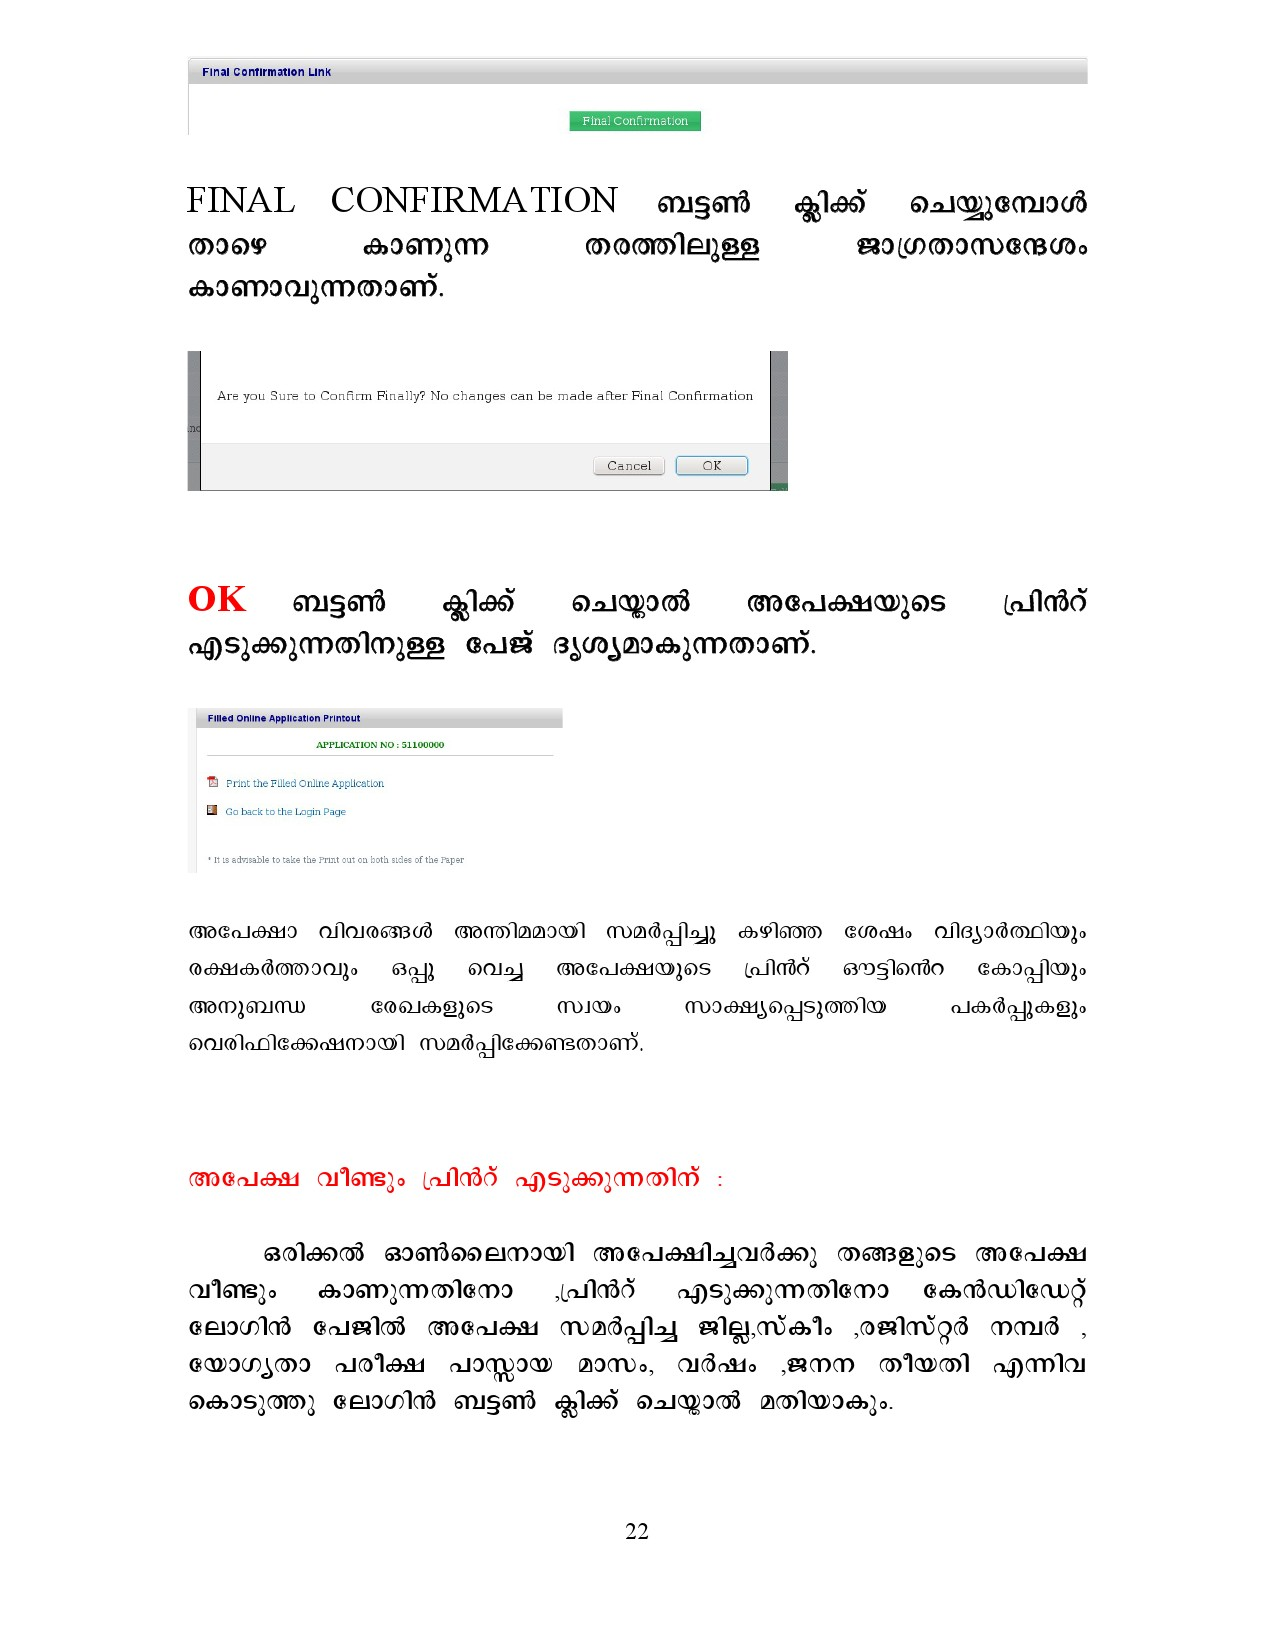 22 Job Application Form Format In Malayalam on